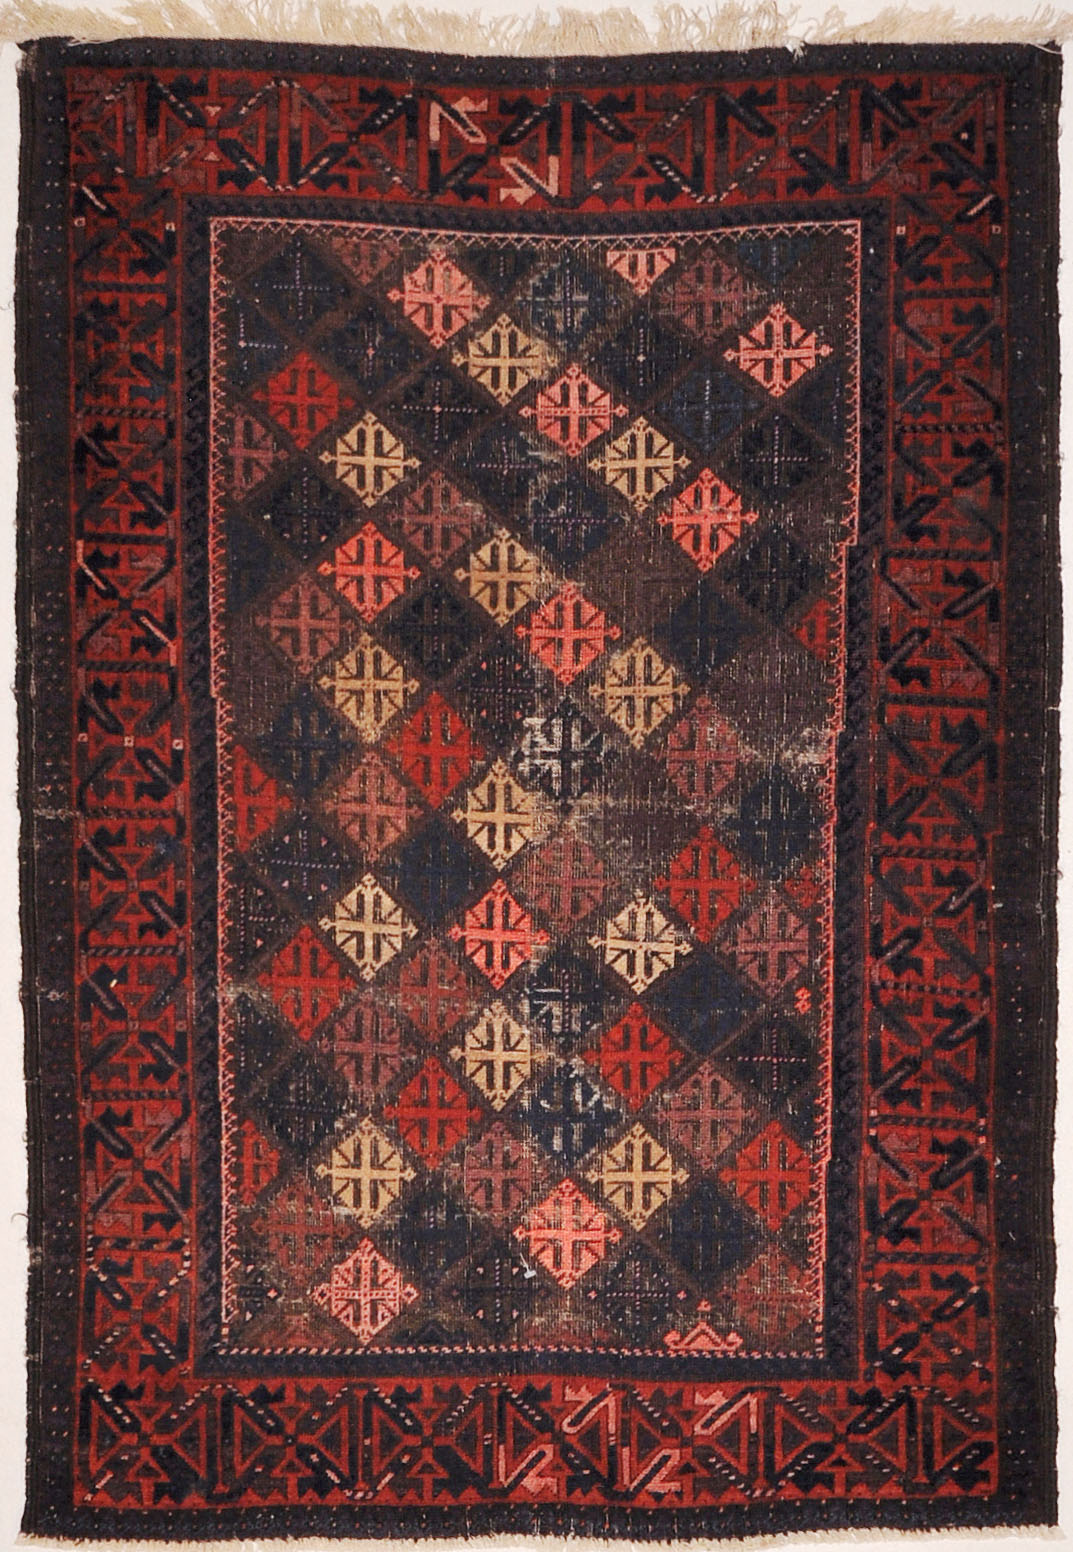 Antique Original Afghani Baluch Multicolor Diamonds A piece of genuine woven carpet art sold at Santa Barbara Design Center.